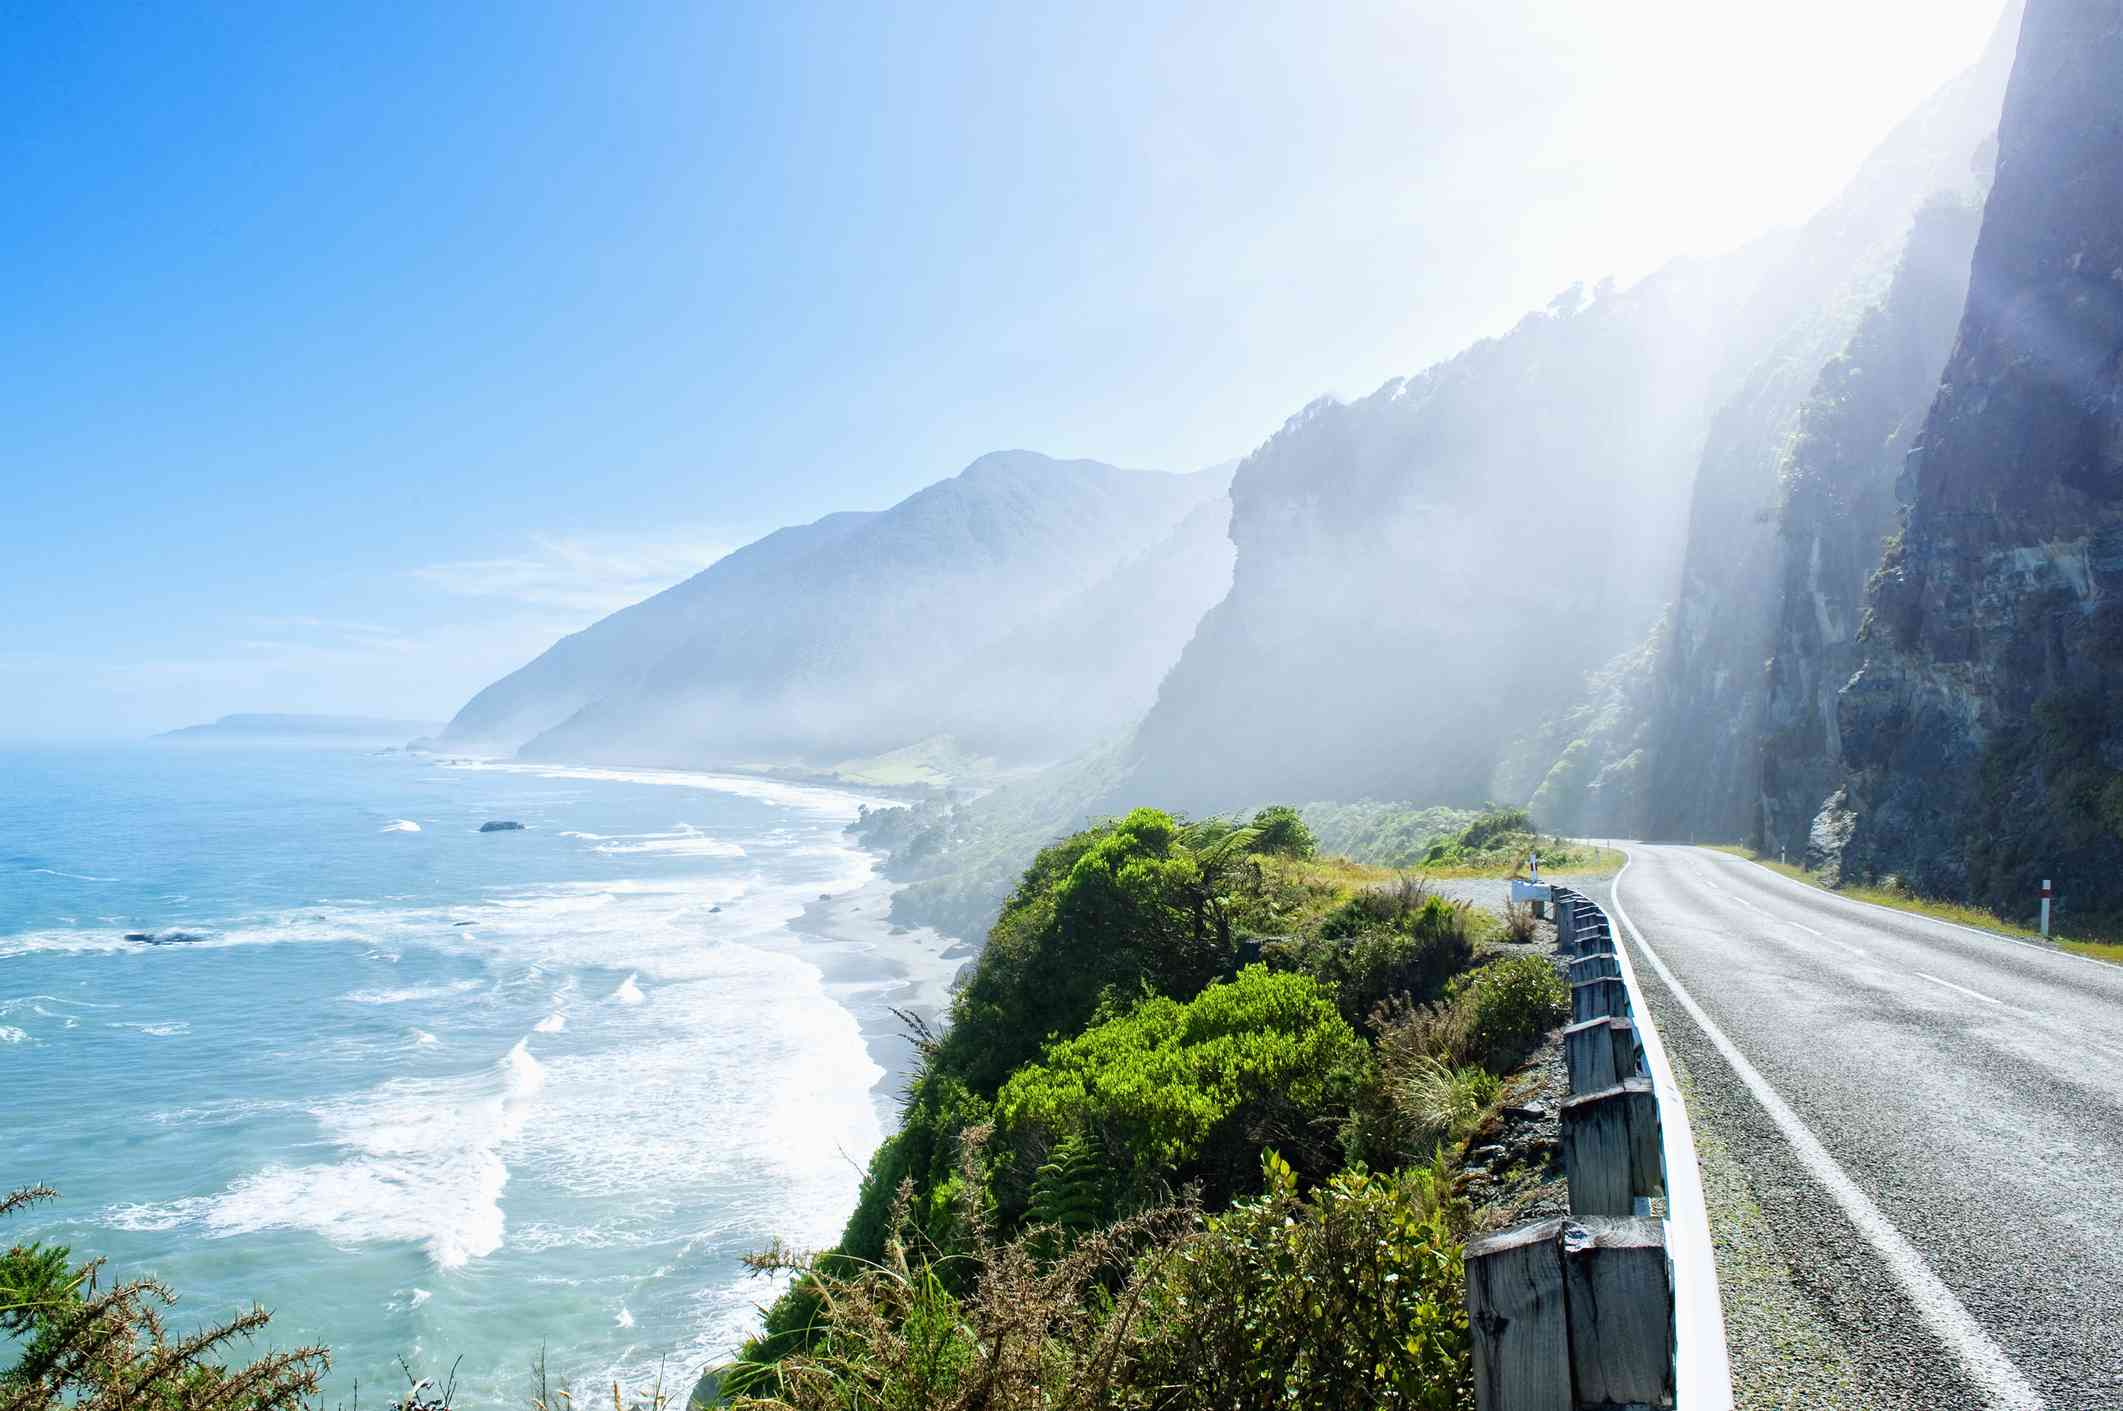 coastal road with waves and steep cliffs